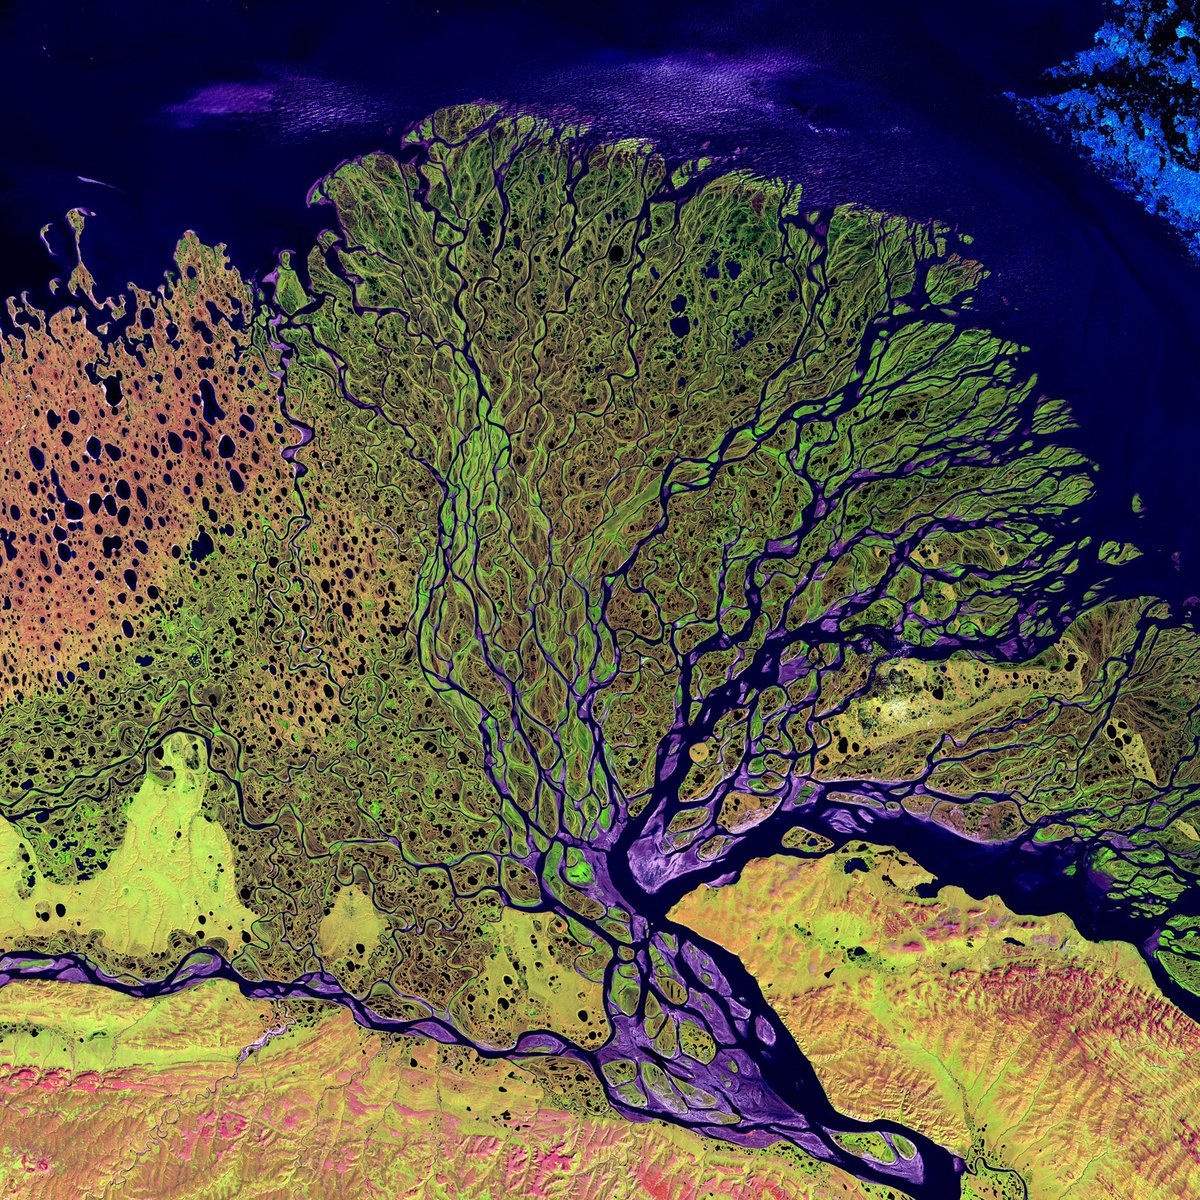 LAST CHANCE TO BOOK our CPD teaching you how to use earth observation data for teaching urbanisation, biodiversity, hazards. Our 27 January online CPD includes a practical introduction to Landsat Explorer. Tickets only £35/45